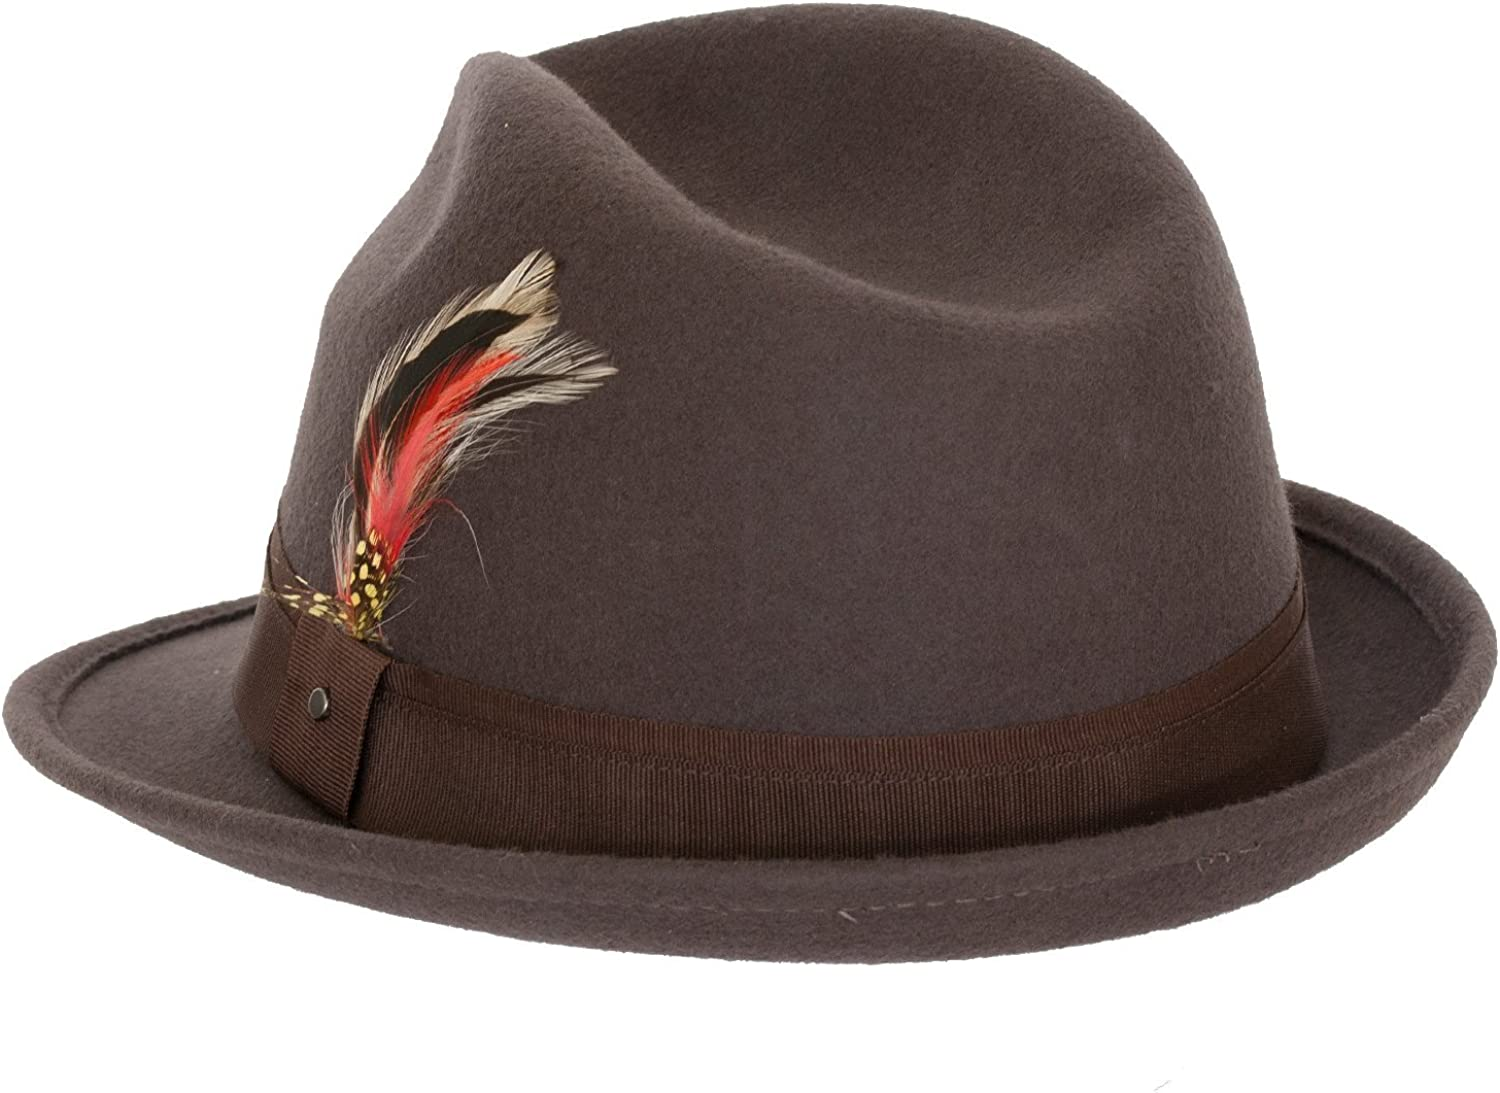 6+ Colors 9th Street Mens 100/% Wool Verve Trilby Fedora Hat